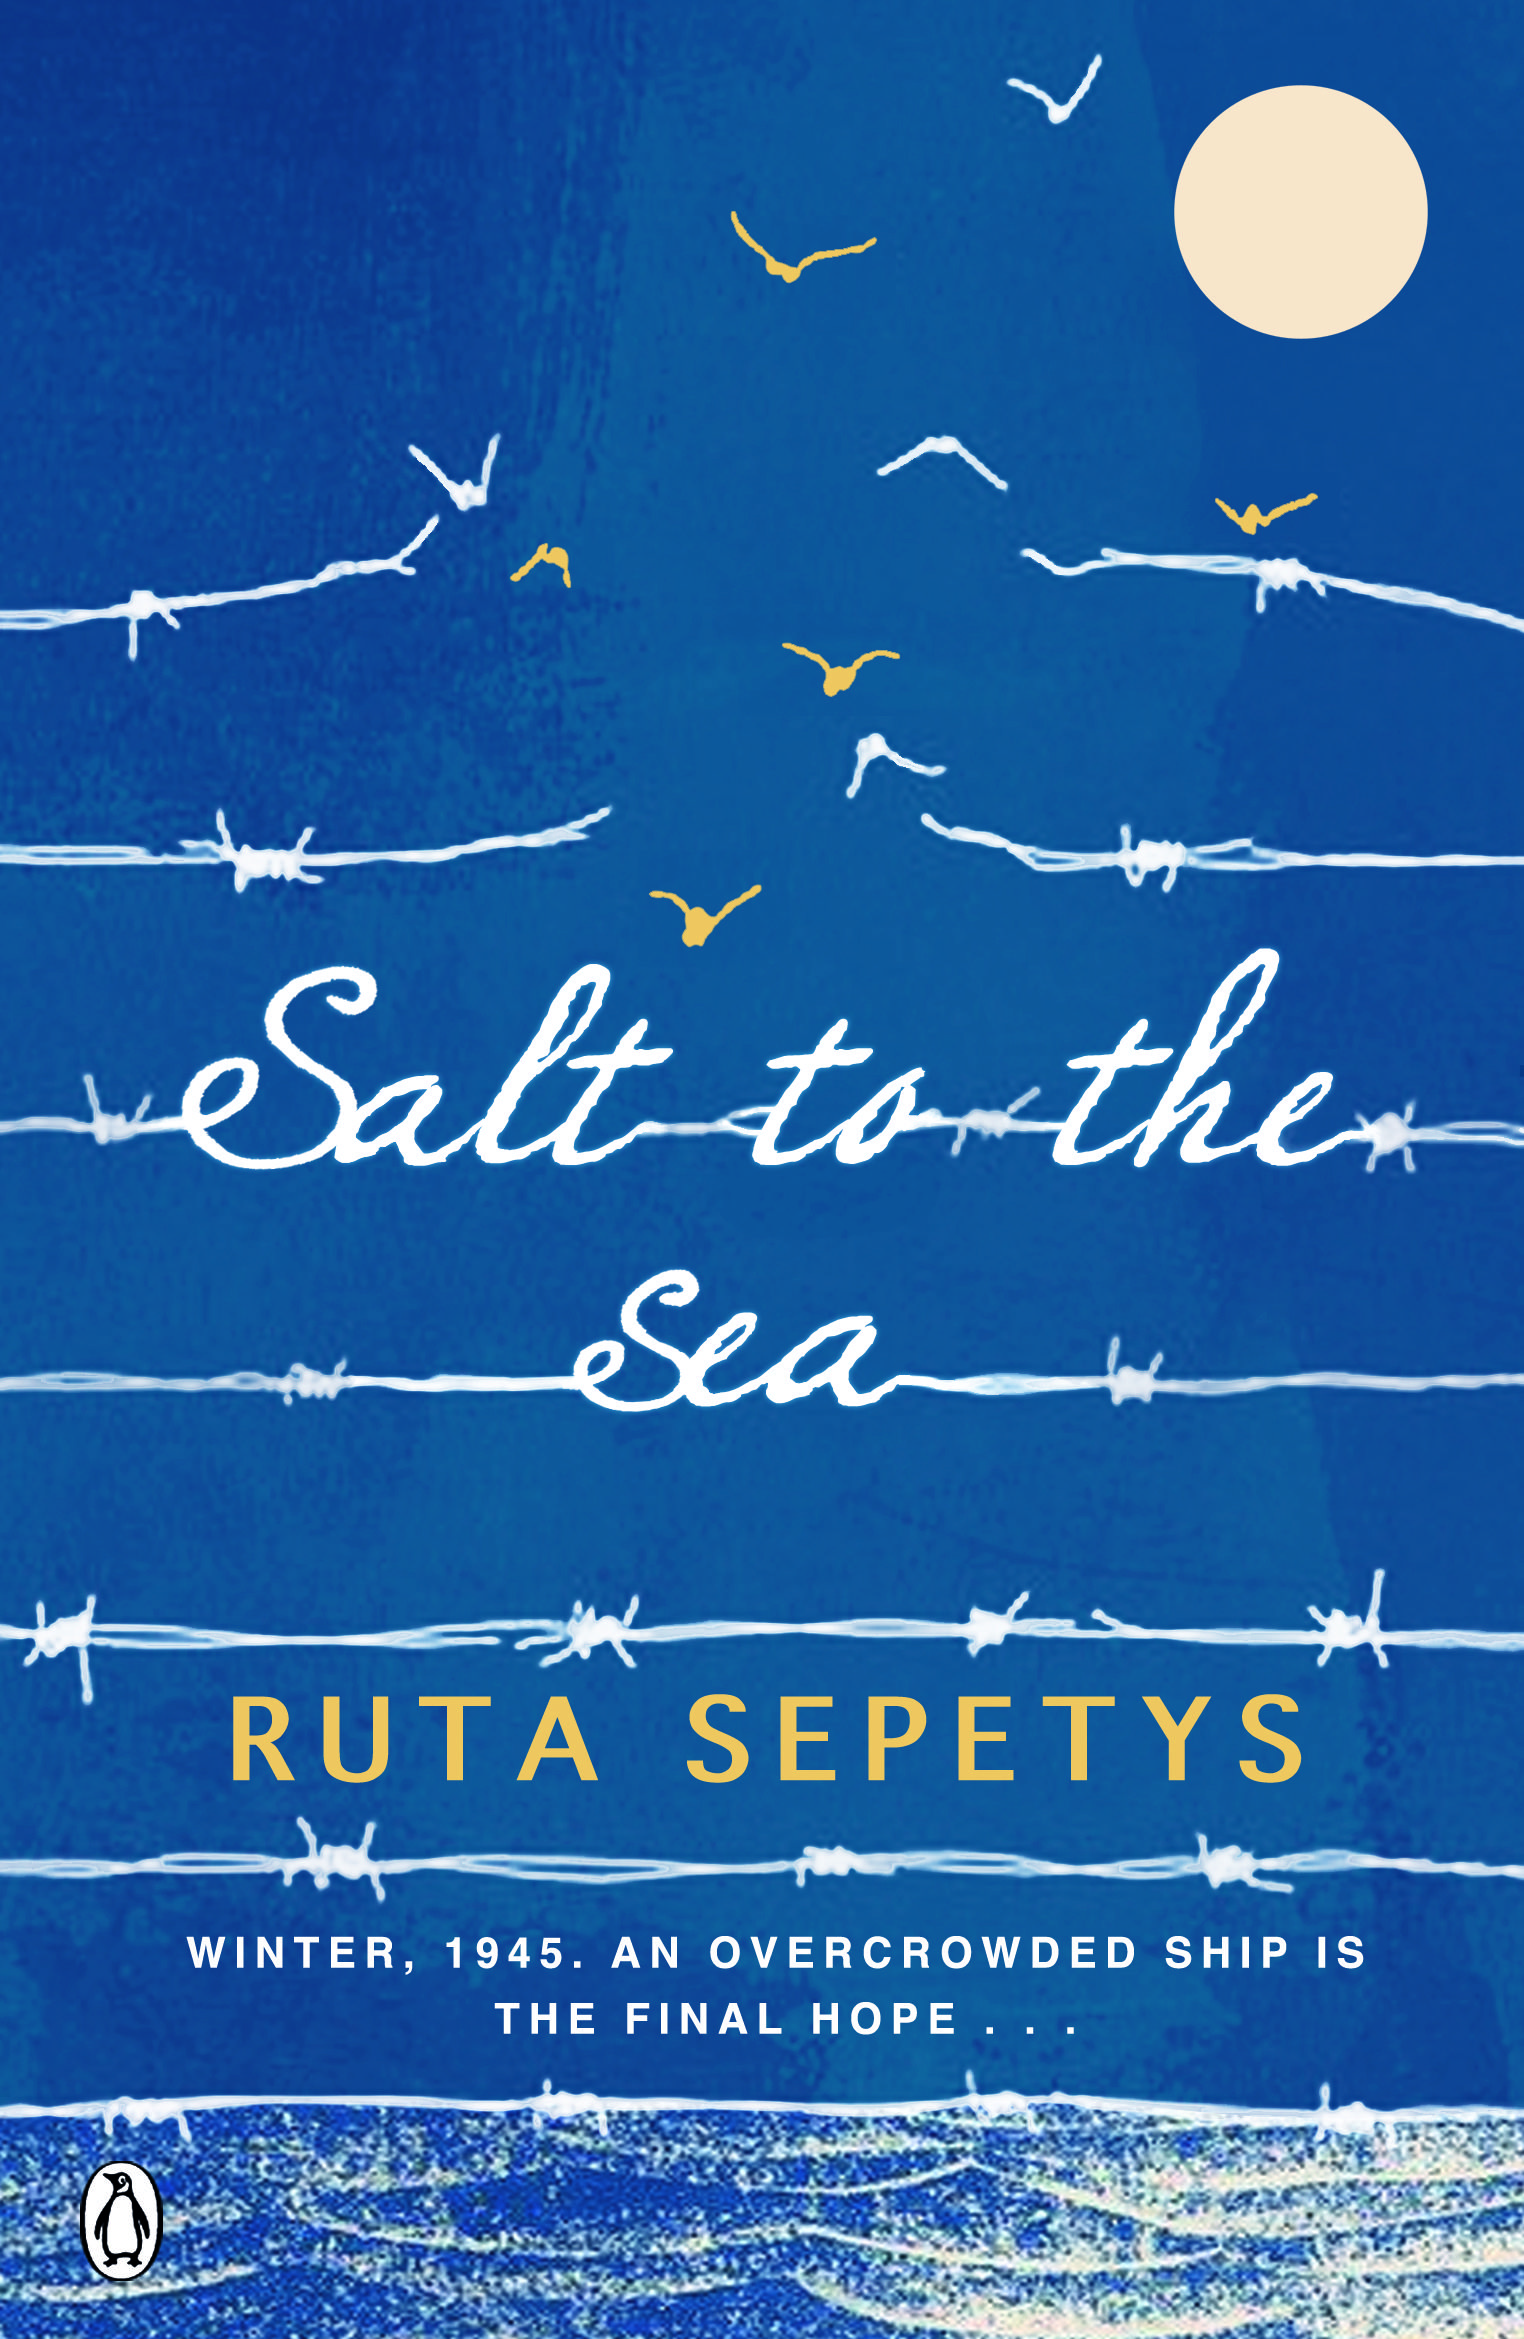 ruta sepetys rutasepetys on pinterest